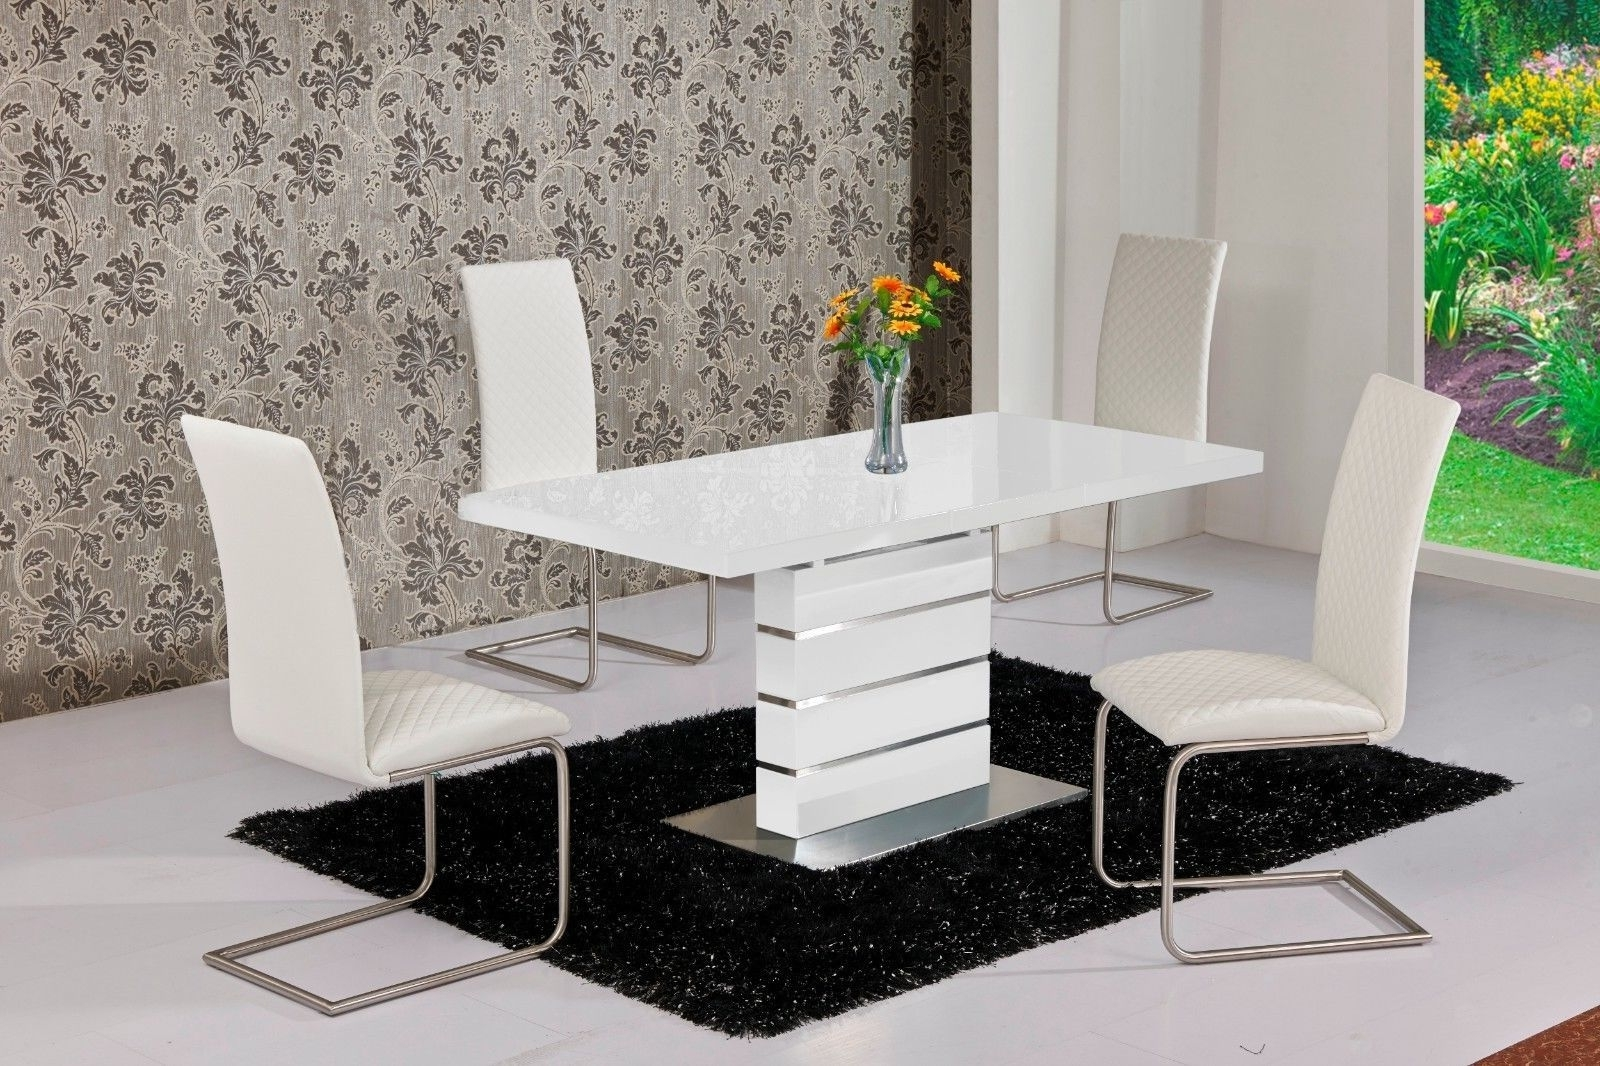 Most Recent Mace High Gloss Extending 120 160 Dining Table & Chair Set – White Within Black Gloss Dining Room Furniture (Gallery 5 of 25)